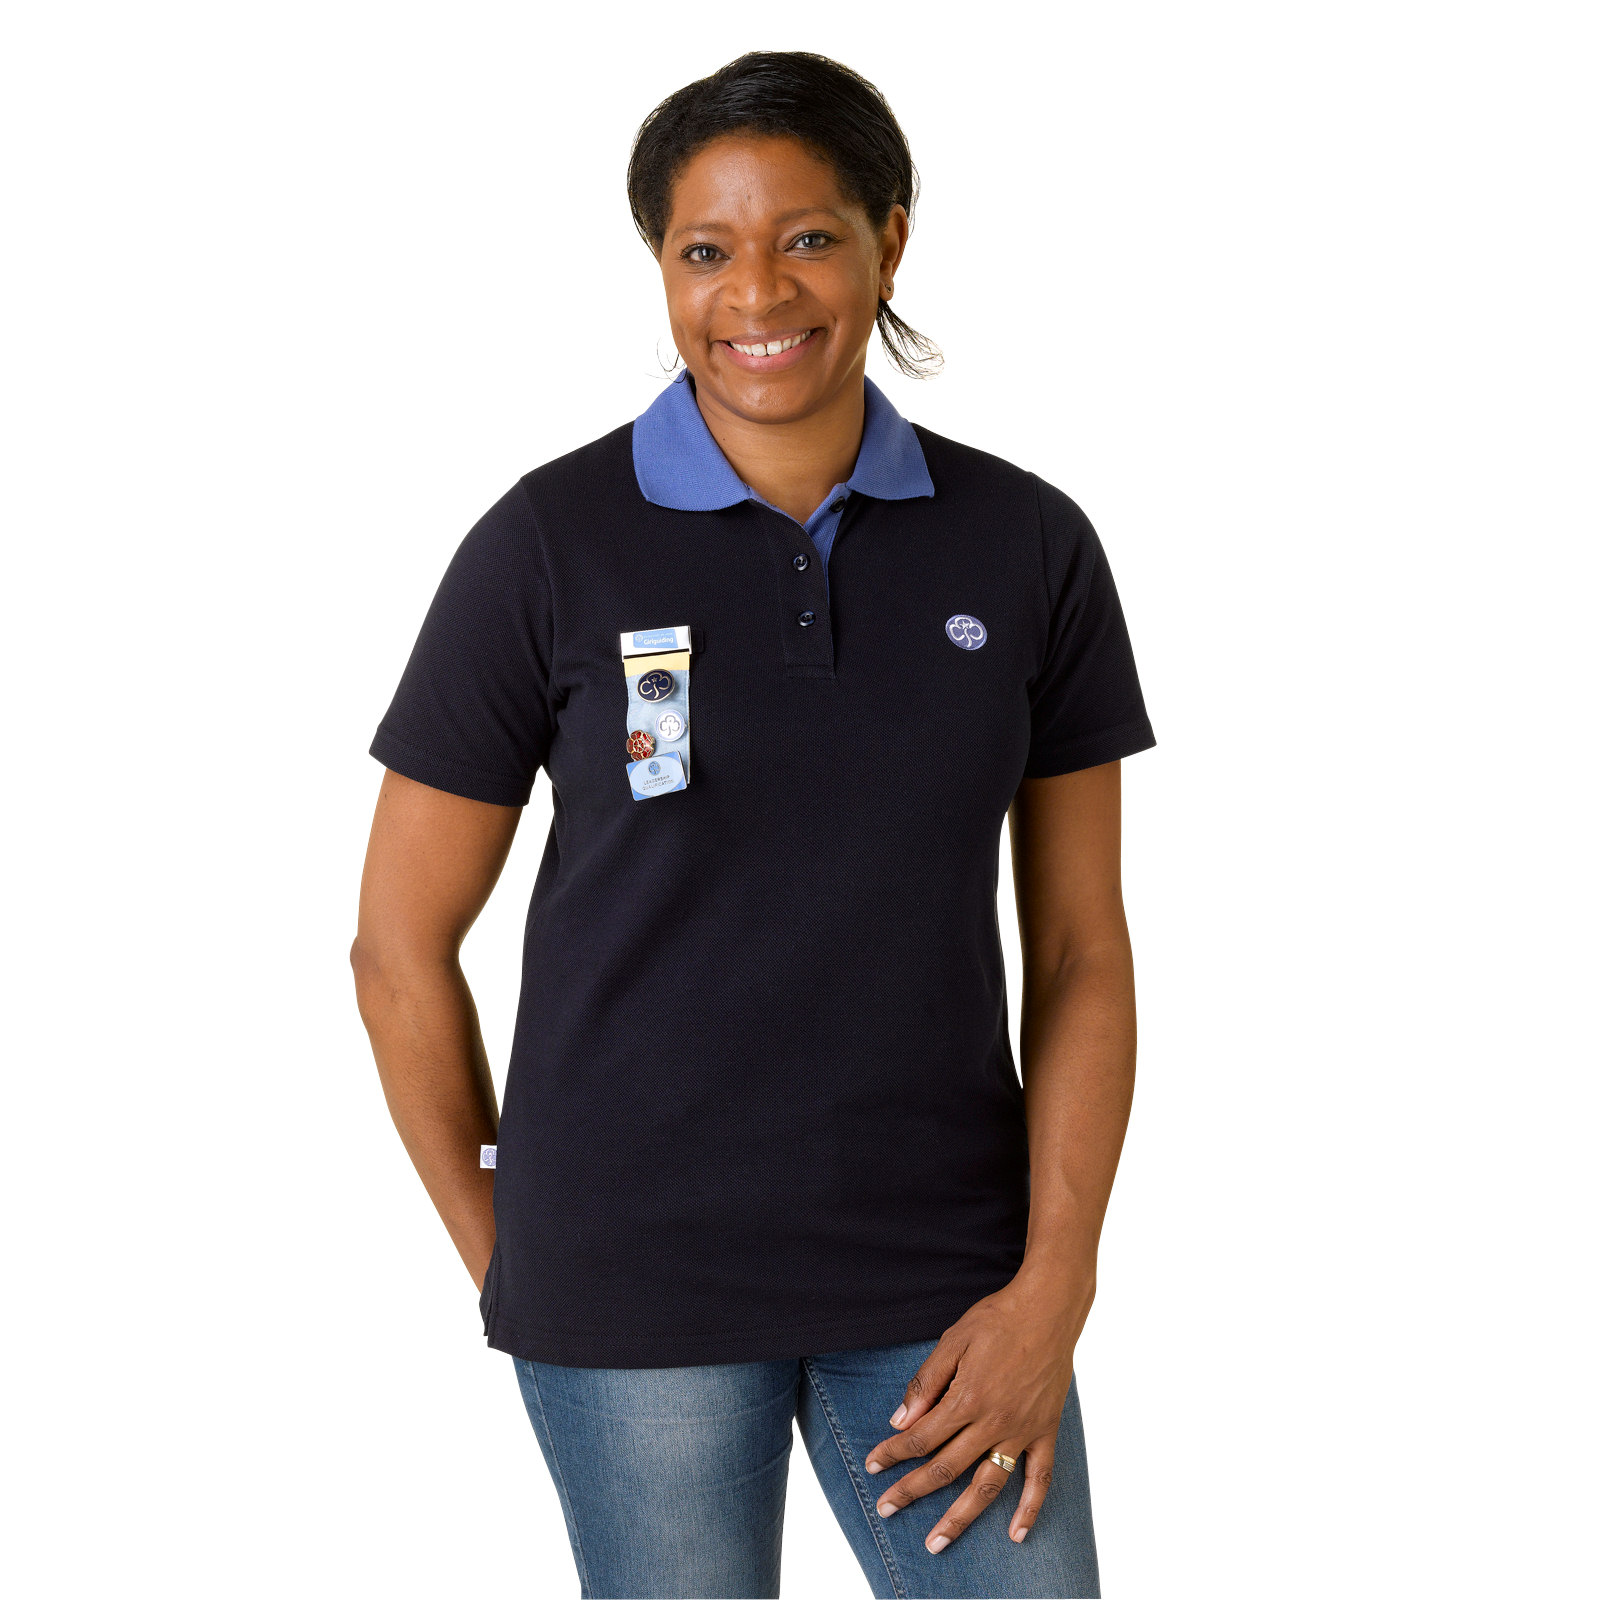 Guides Adult Leader Navy Polo Shirt